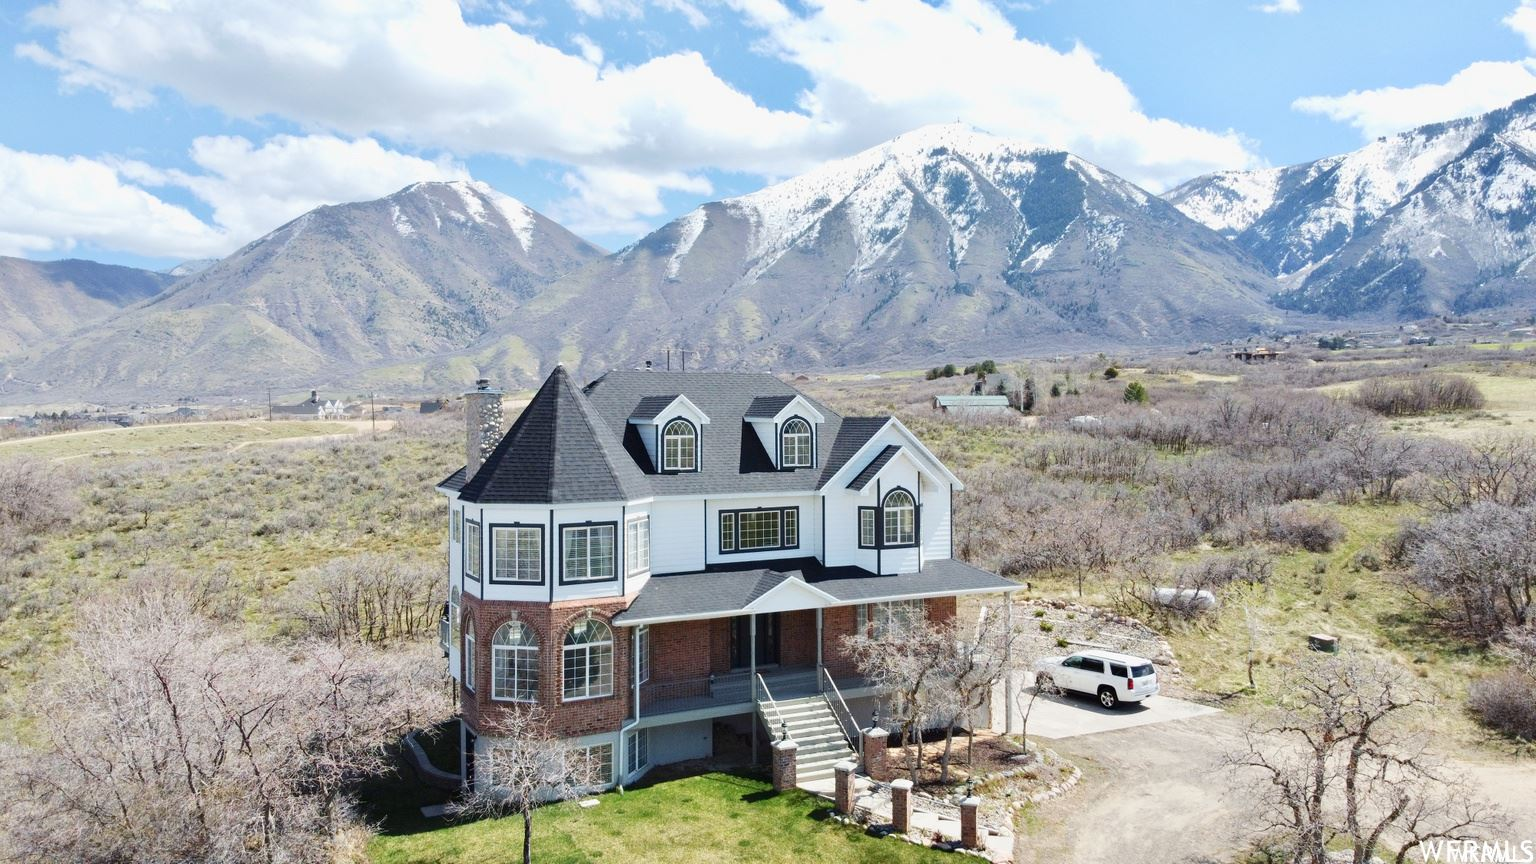 Photo of 10929 S LOAFER CANYON RD, Salem, UT 84653 (MLS # 1768938)